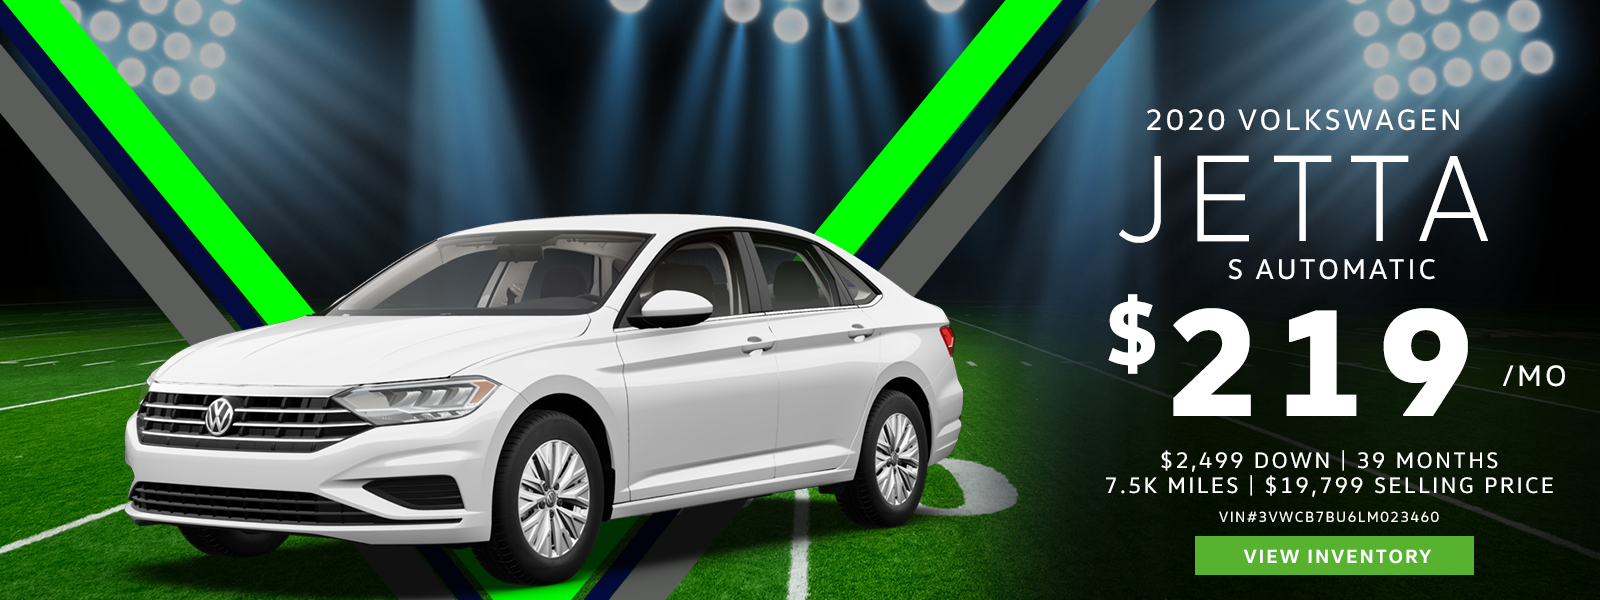 Lease a 2020 Jetta S for $219/mo.